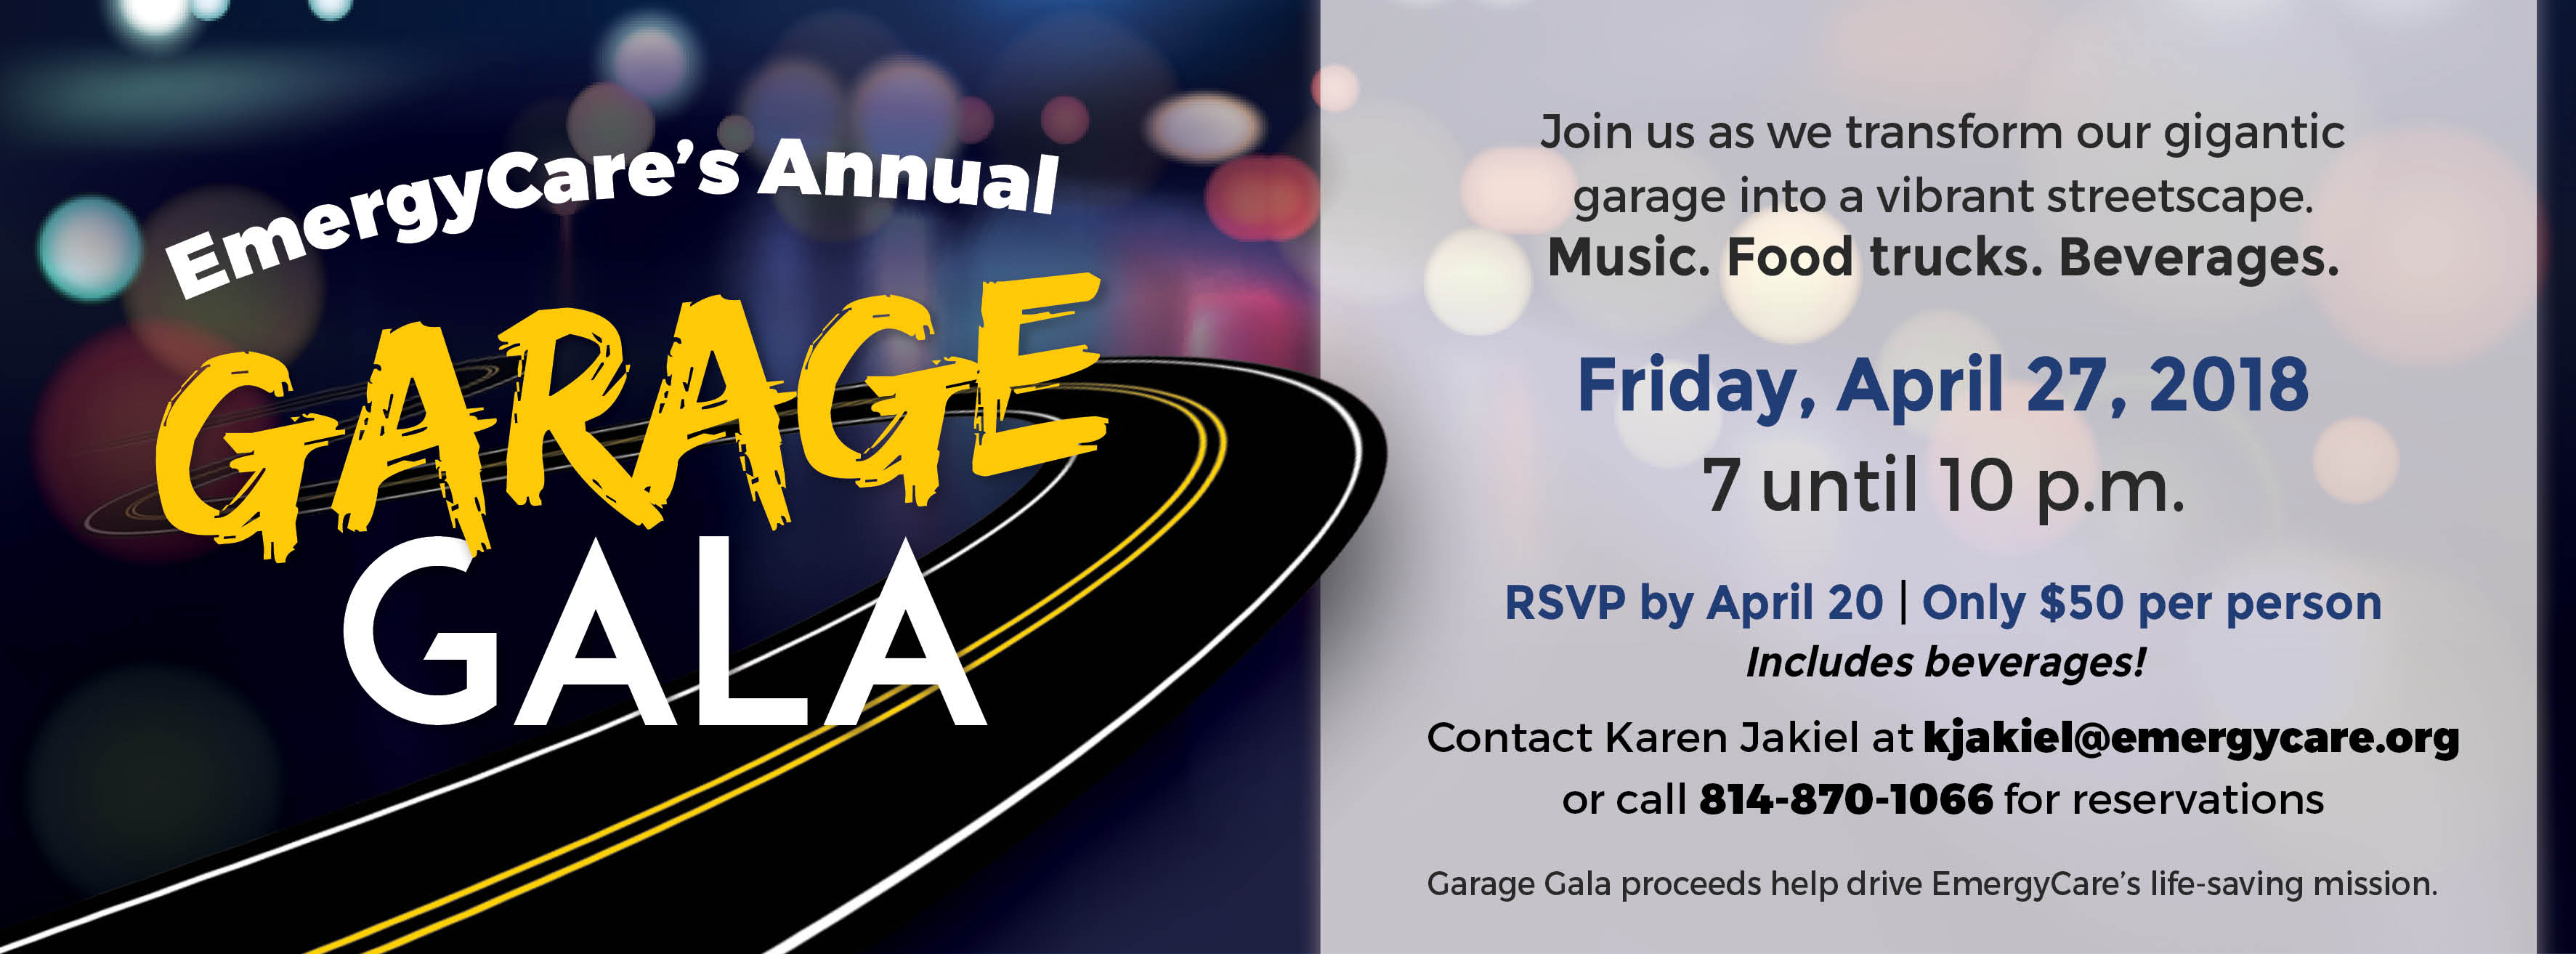 EmergyCare Garage Gala 2018 Facebook